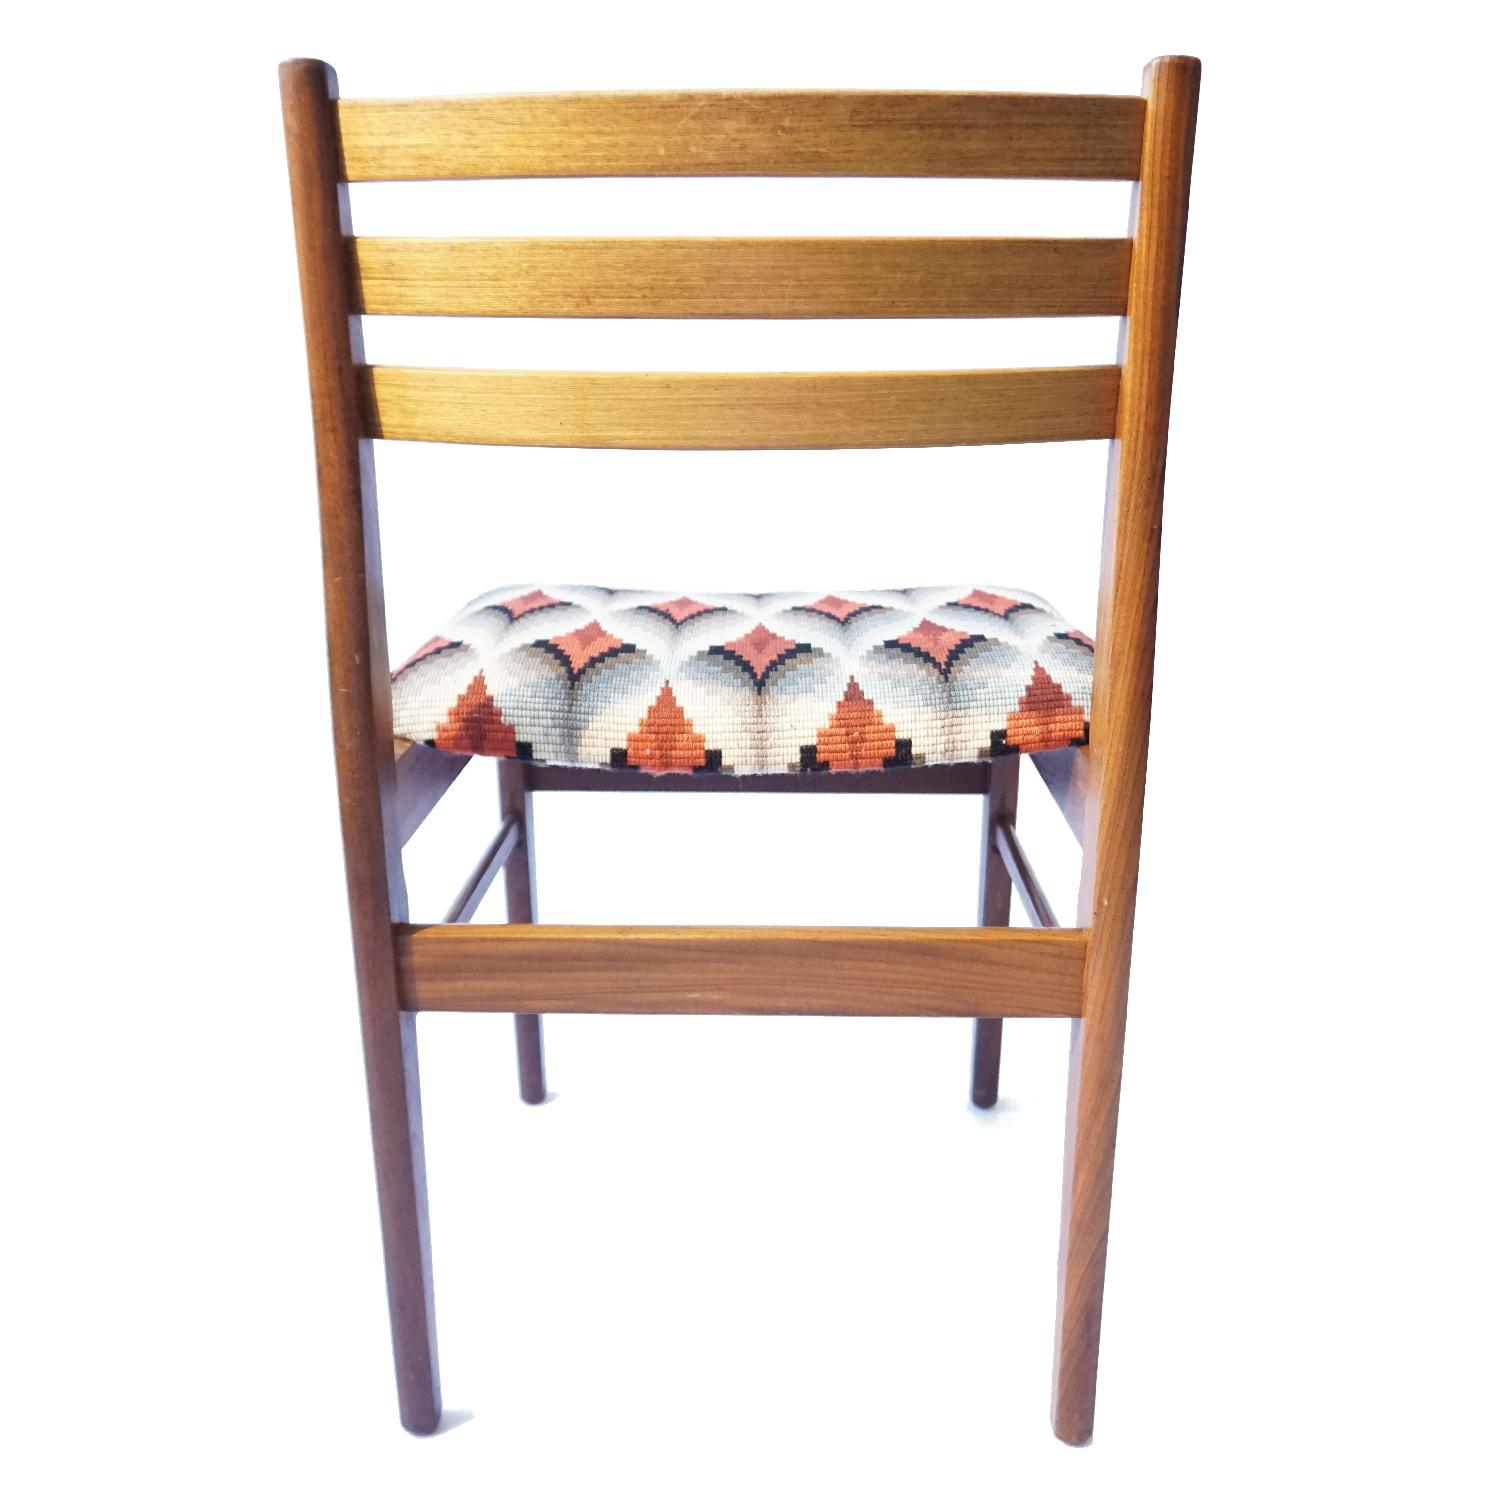 Vintage Danish Furniture Makers Chairs - image-2